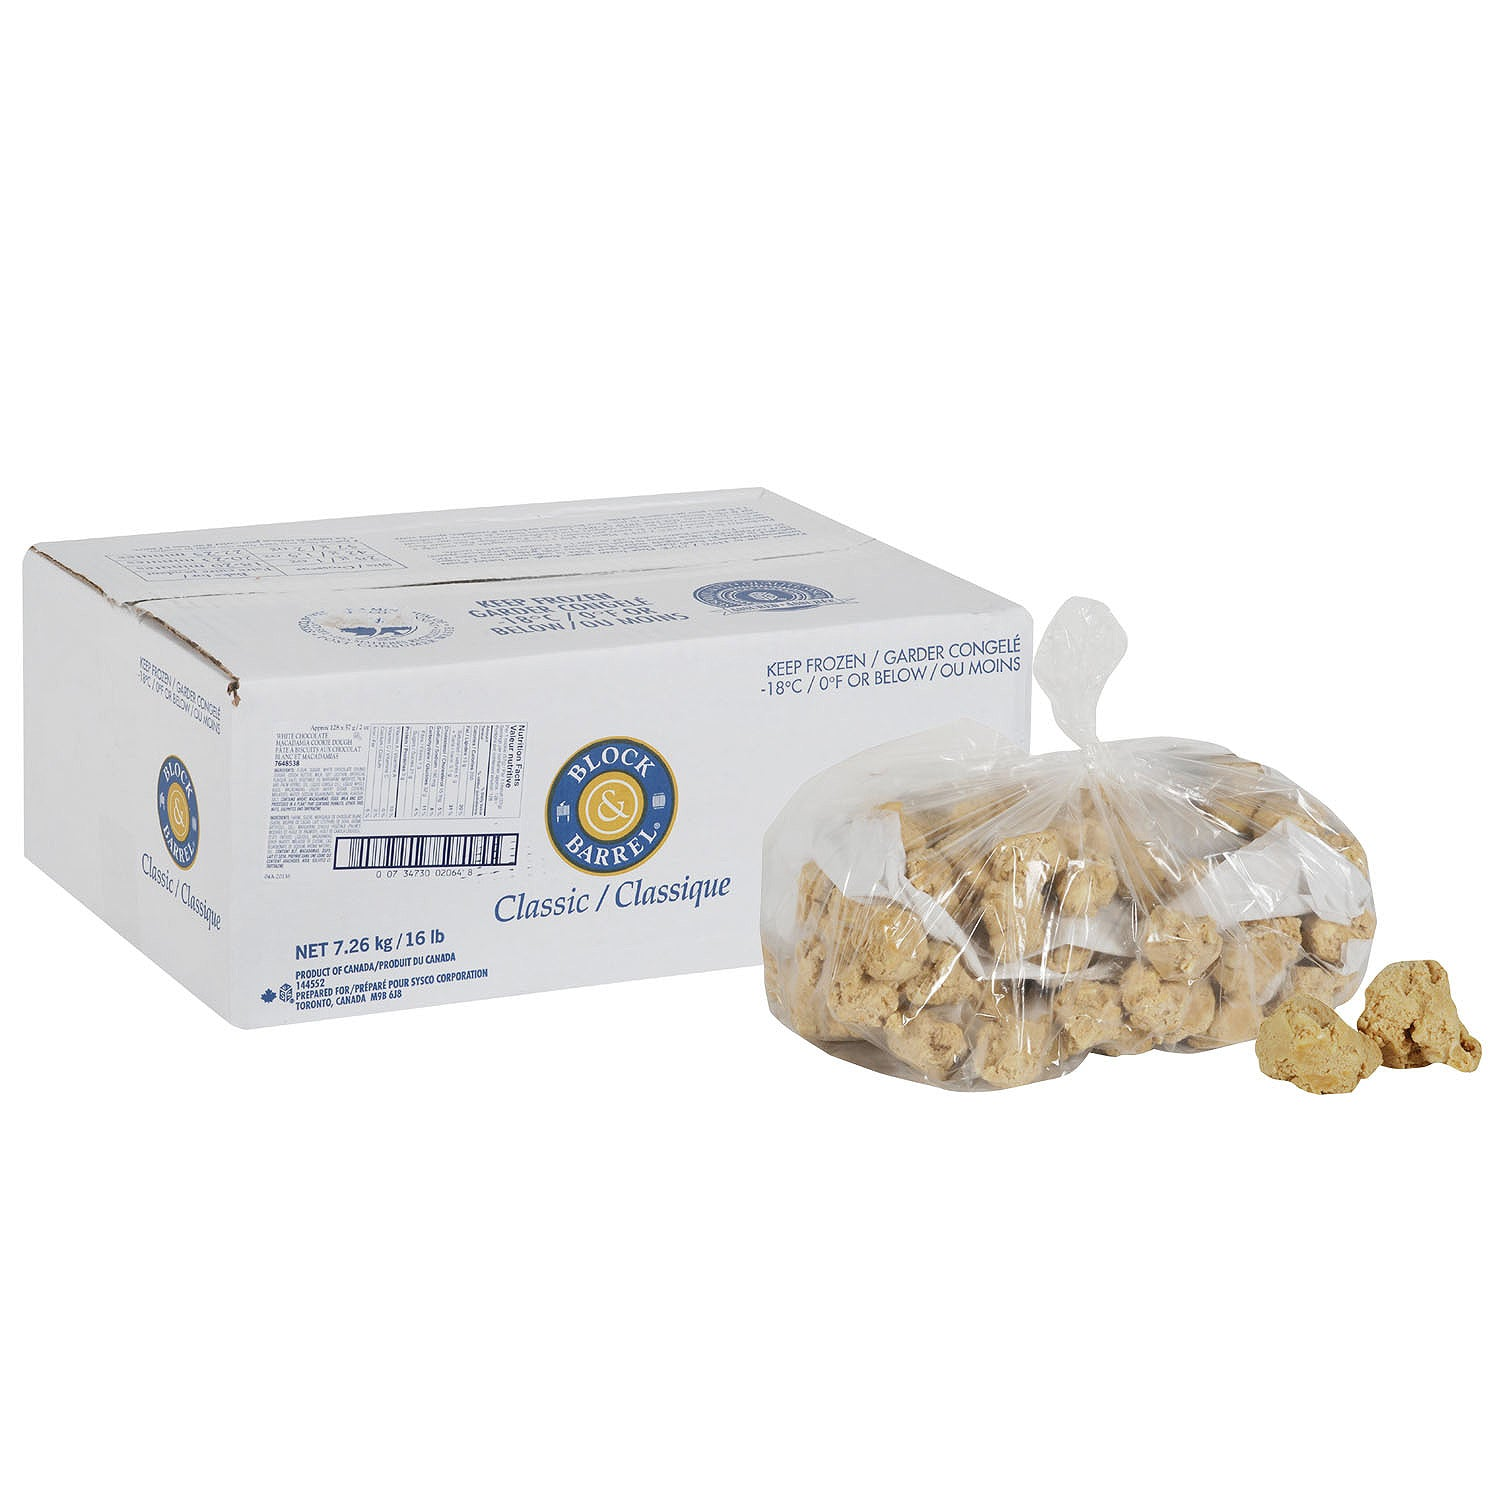 Sysco Block & Barrel Frozen White Chocolate Macadamia Nut Cookie Dough 56 g - 128 Pack [$0.42/each]